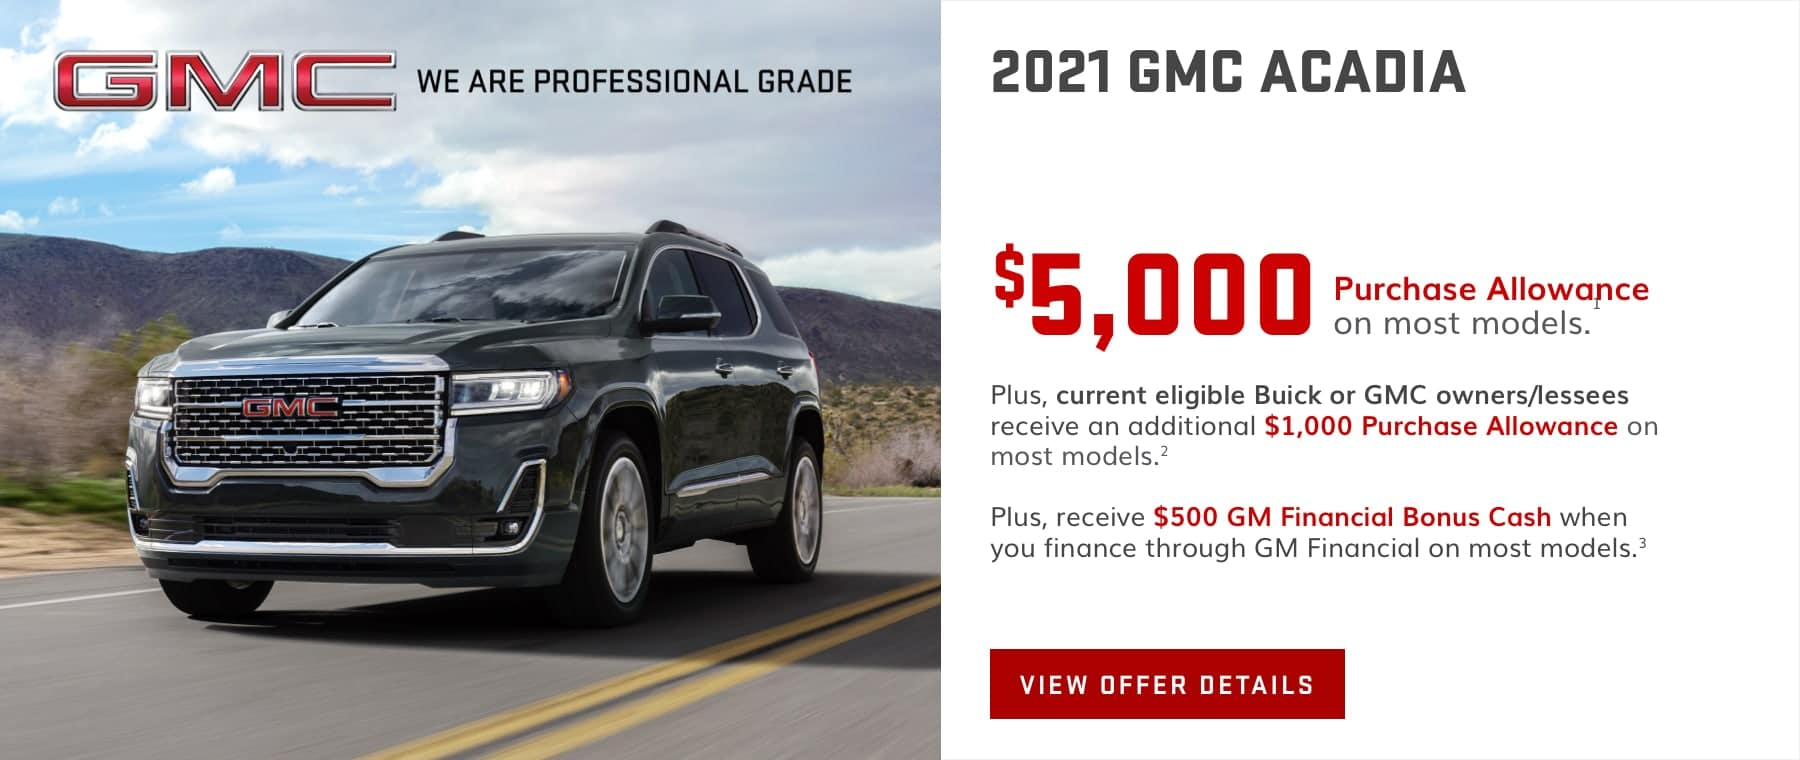 $5,000 Purchase Allowance on most models.1 Plus, current eligible Buick or GMC owners/lessees receive an additional $1,000 Purchase Allowance on most models.2 Plus, receive $500 GM Financial Bonus Cash when you finance through GM Financial on most models.3